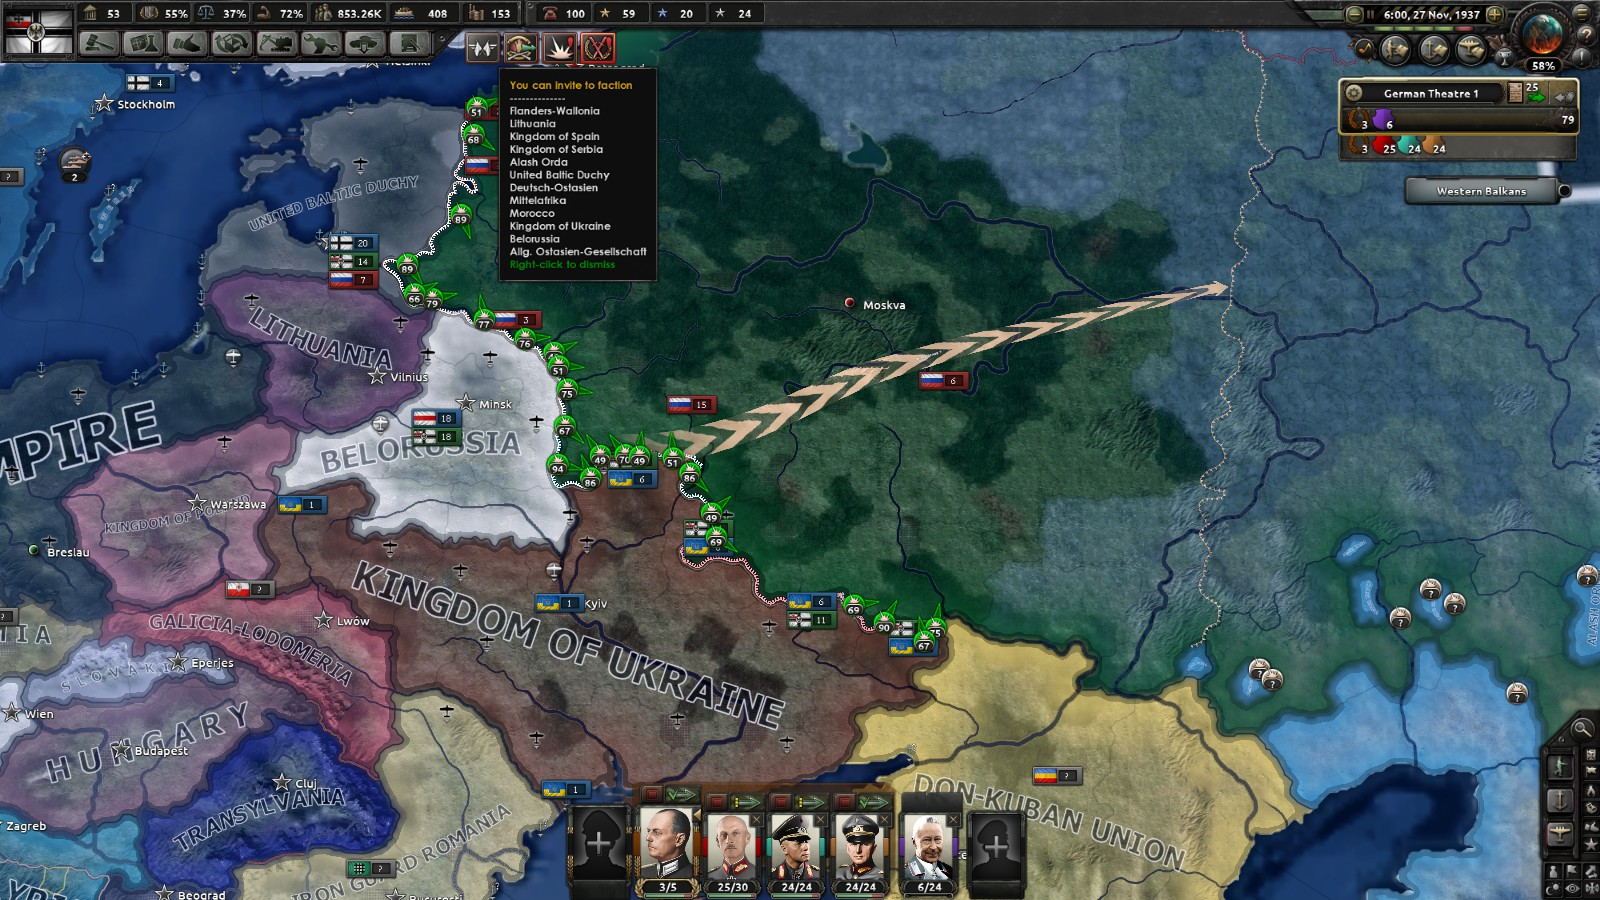 Germany gets notification to invite its faction members to faction